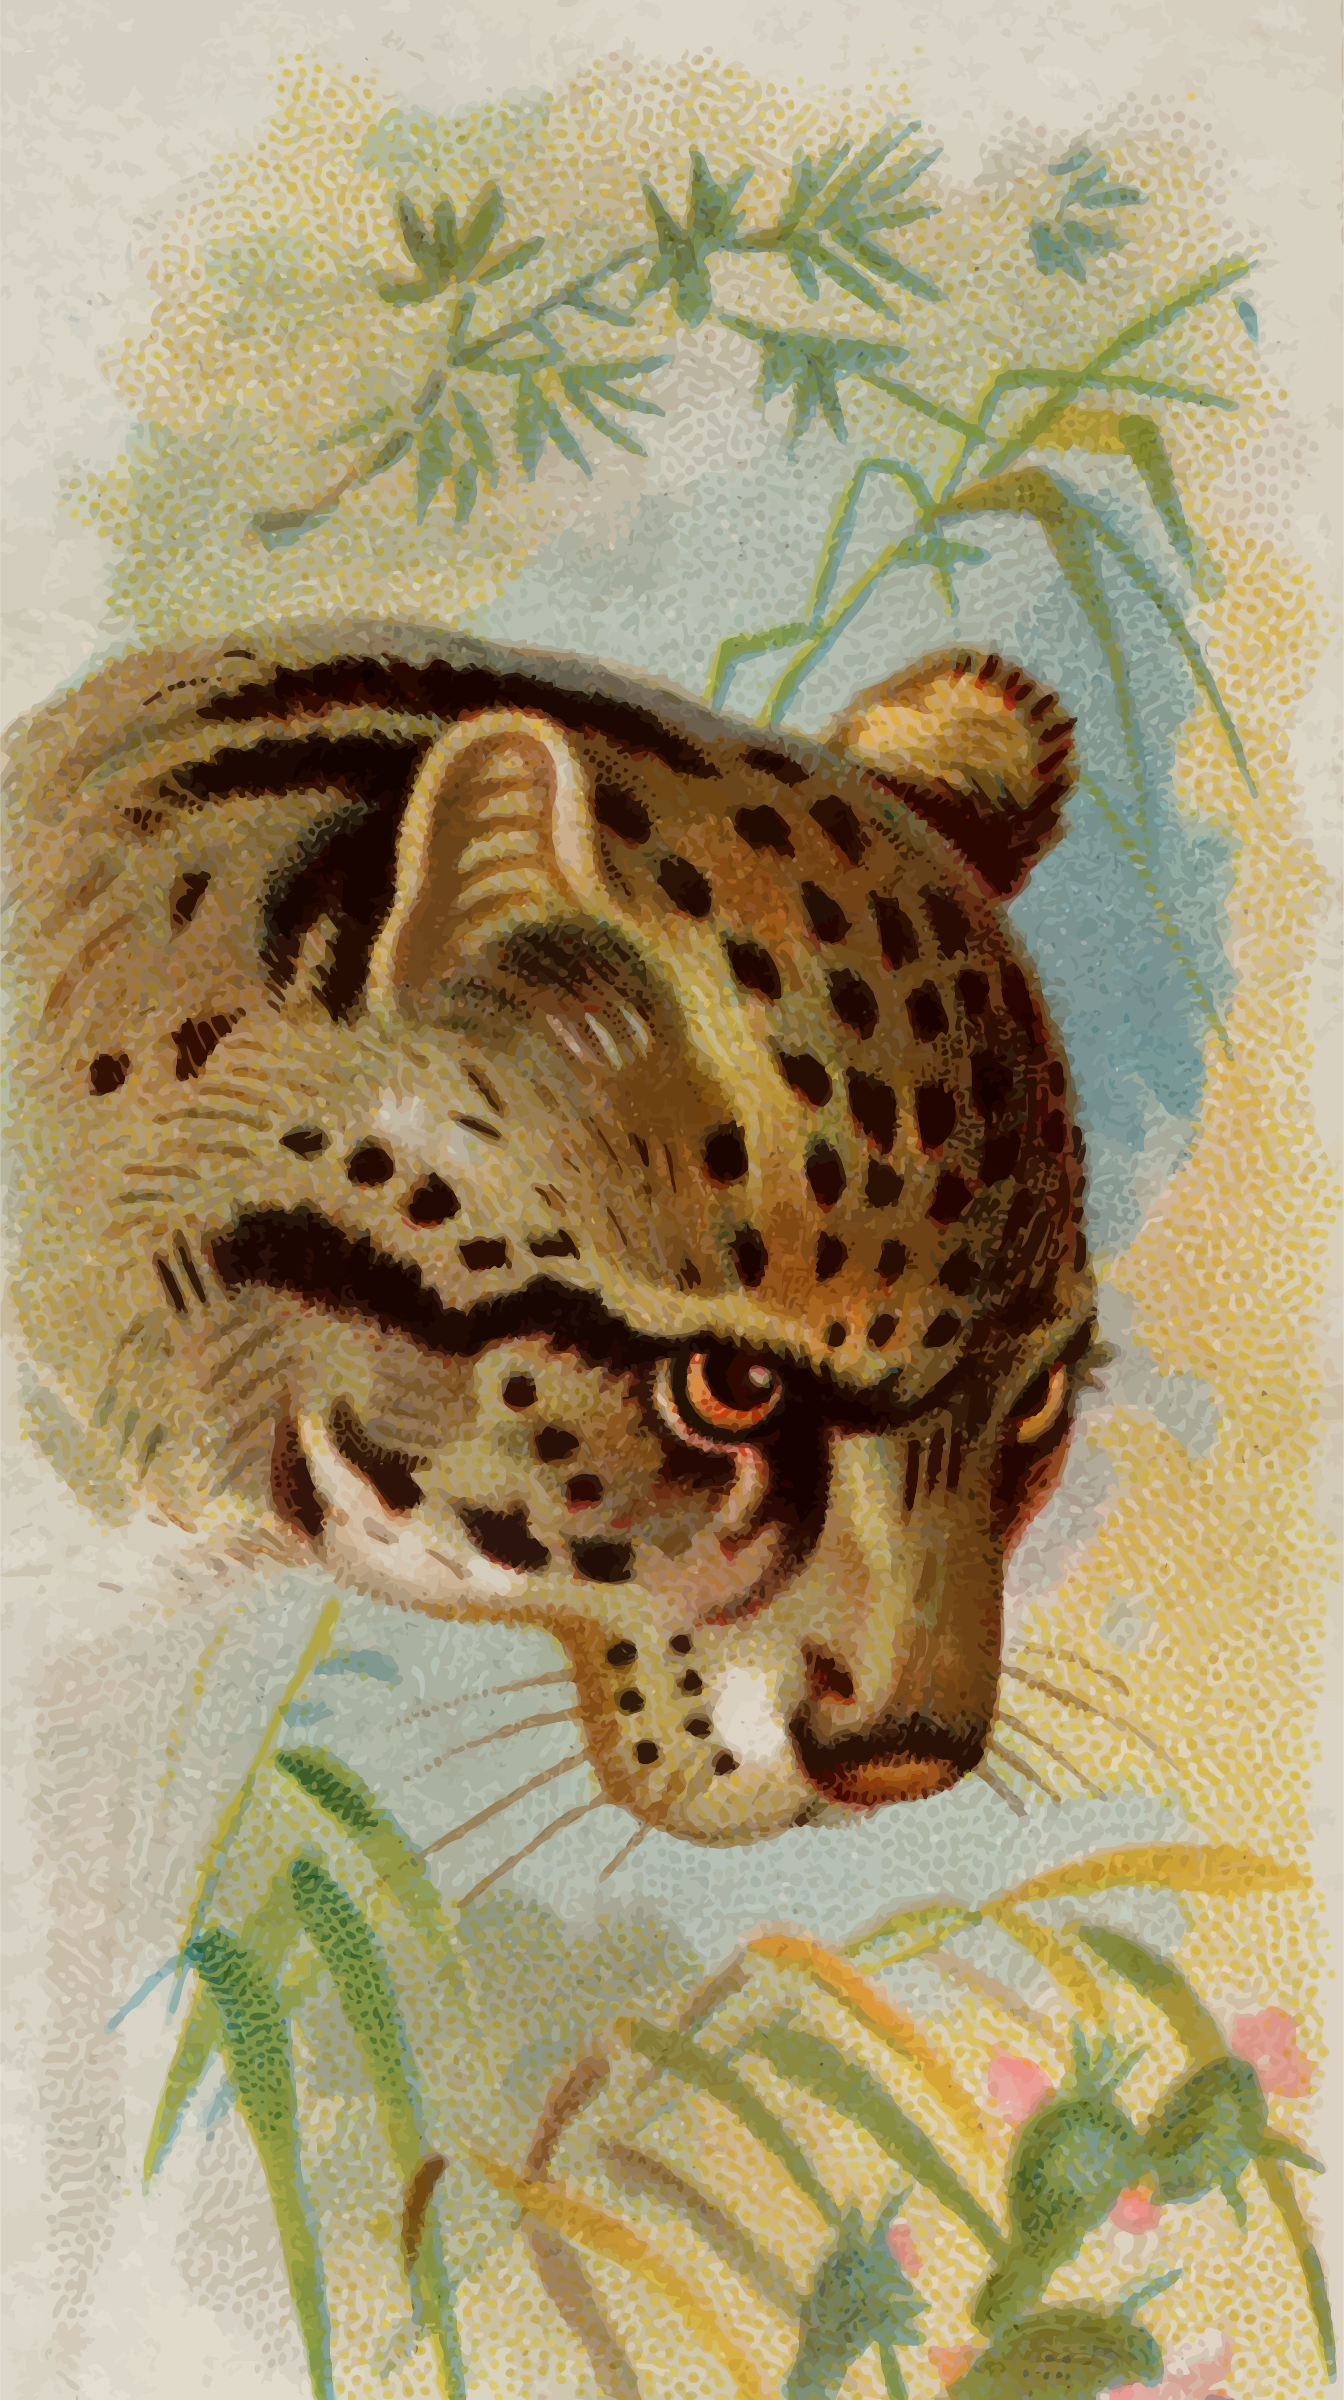 Cigarette card - Painted ocelot by Firkin